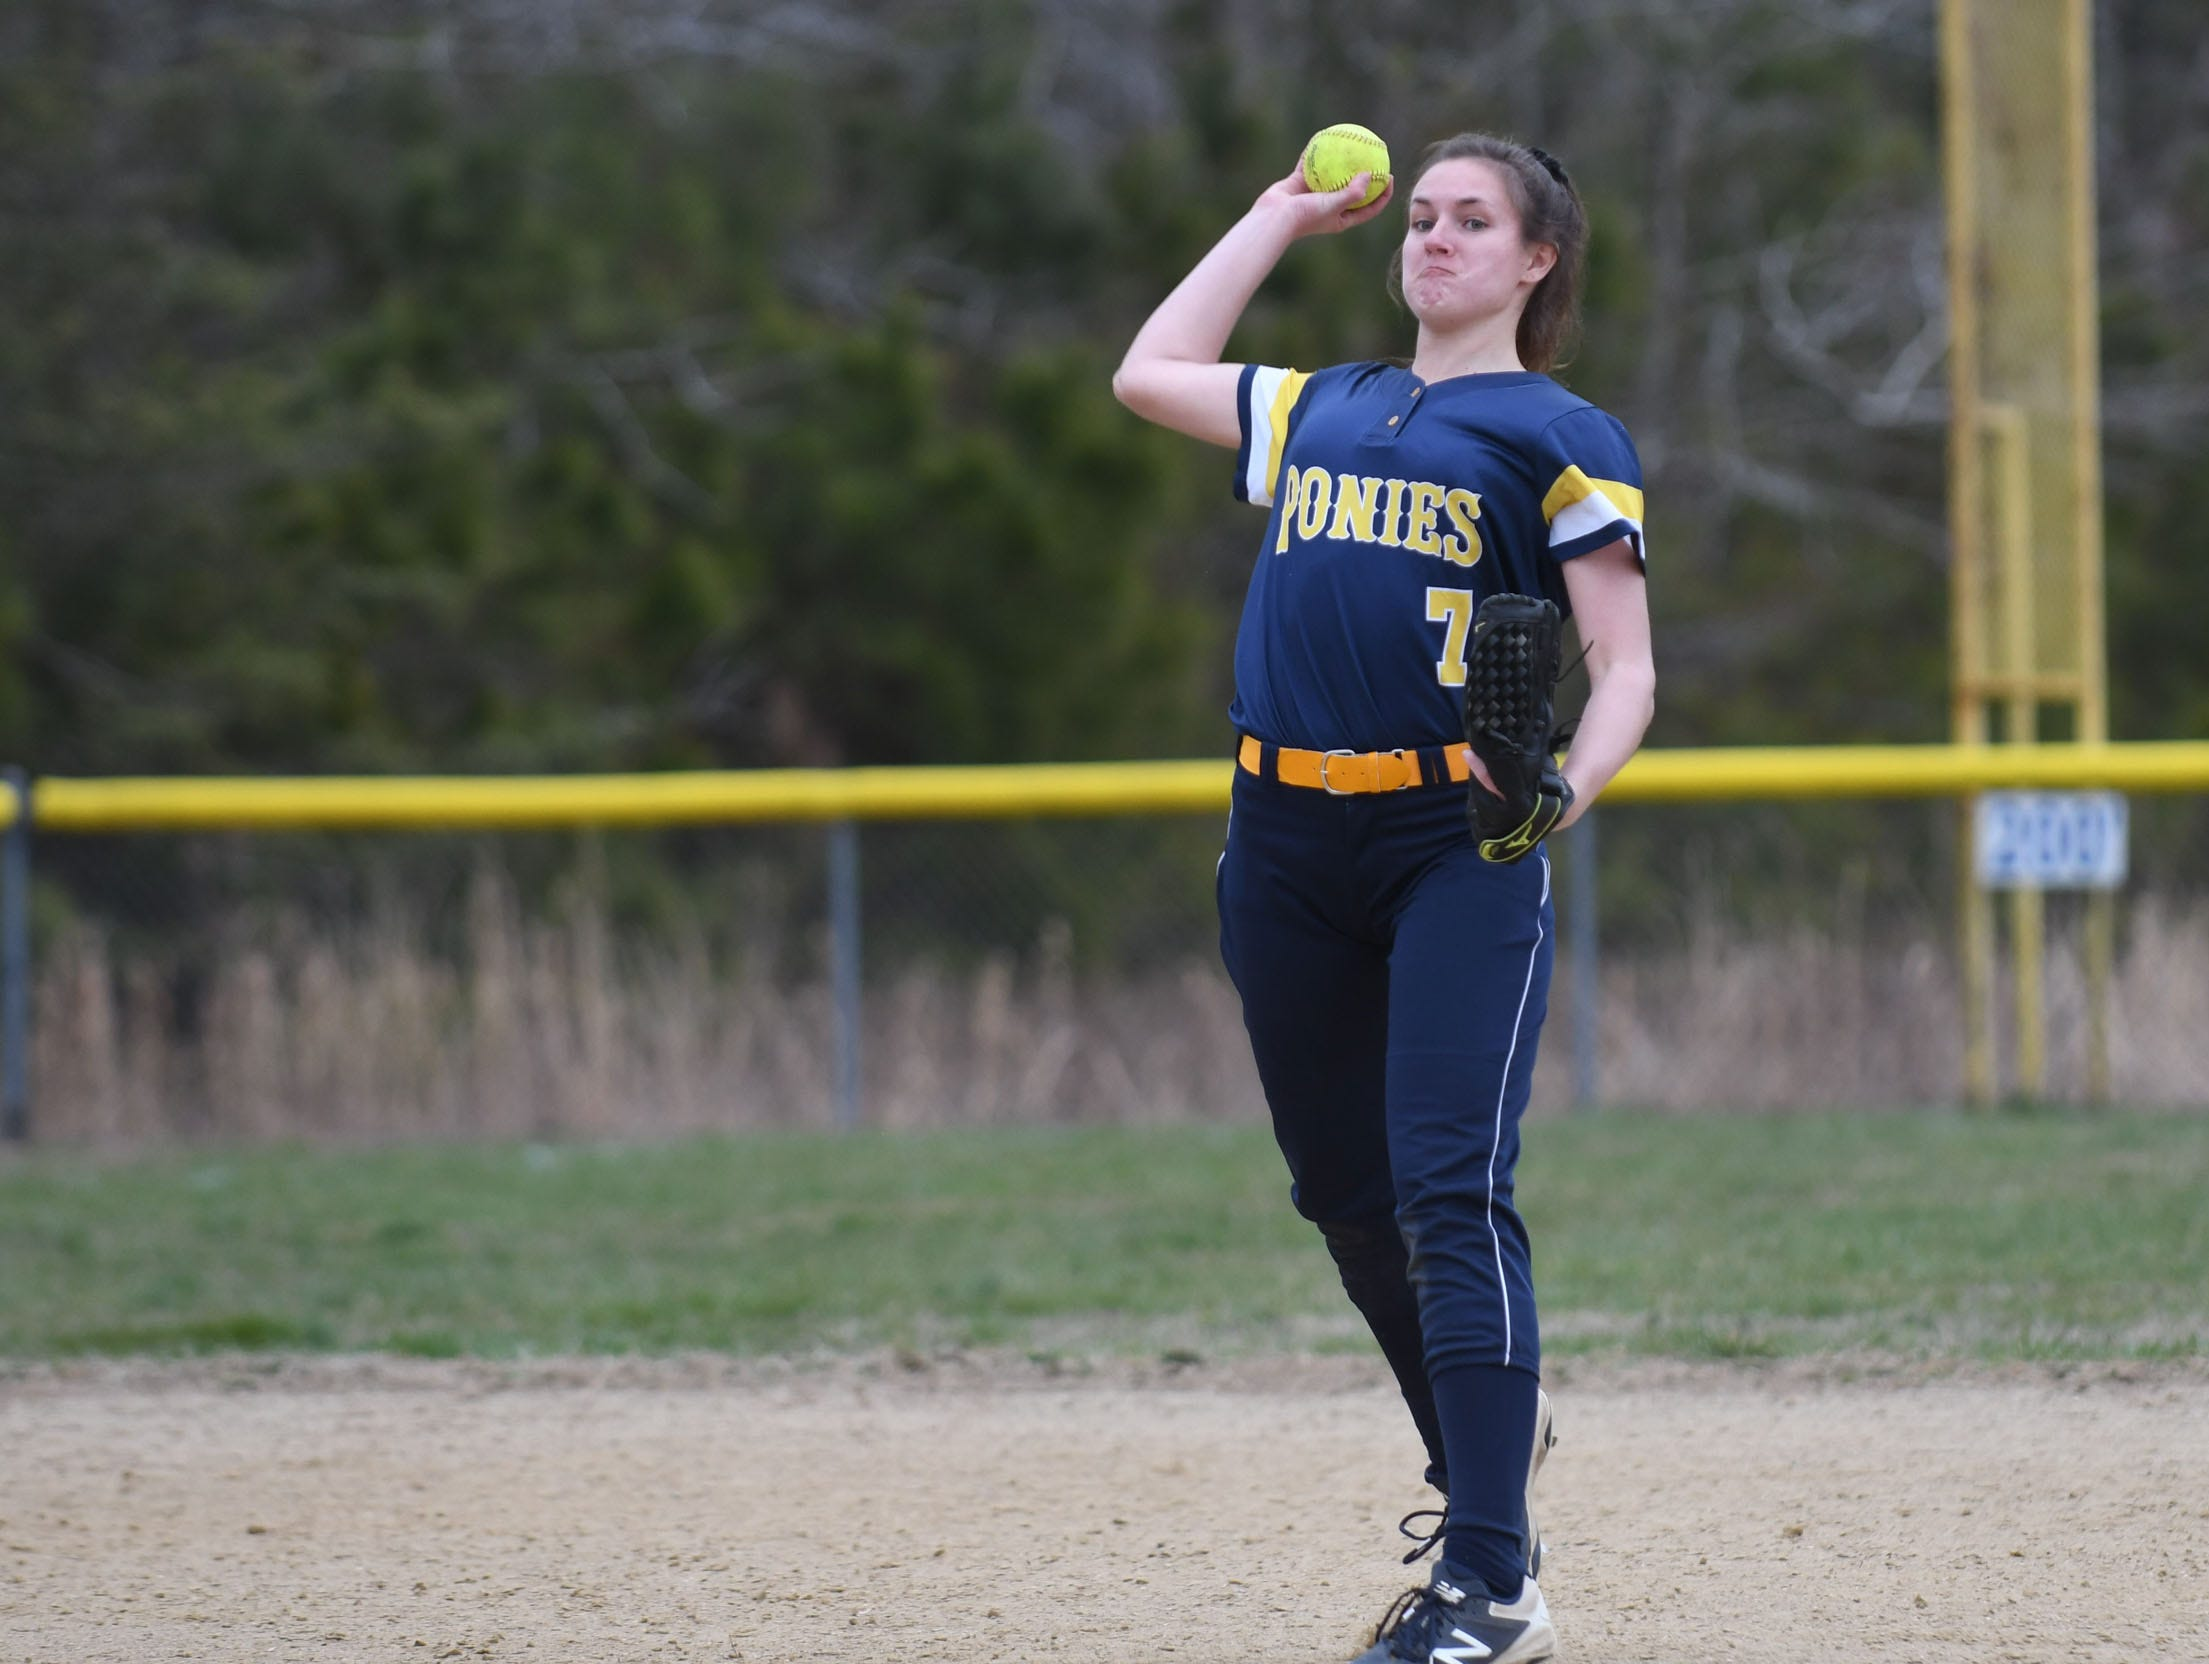 Chincoteague's Caroline Thornton makes the throw from short against Holly Grove on Wednesday, March 20, 2019 in Westover, Md.